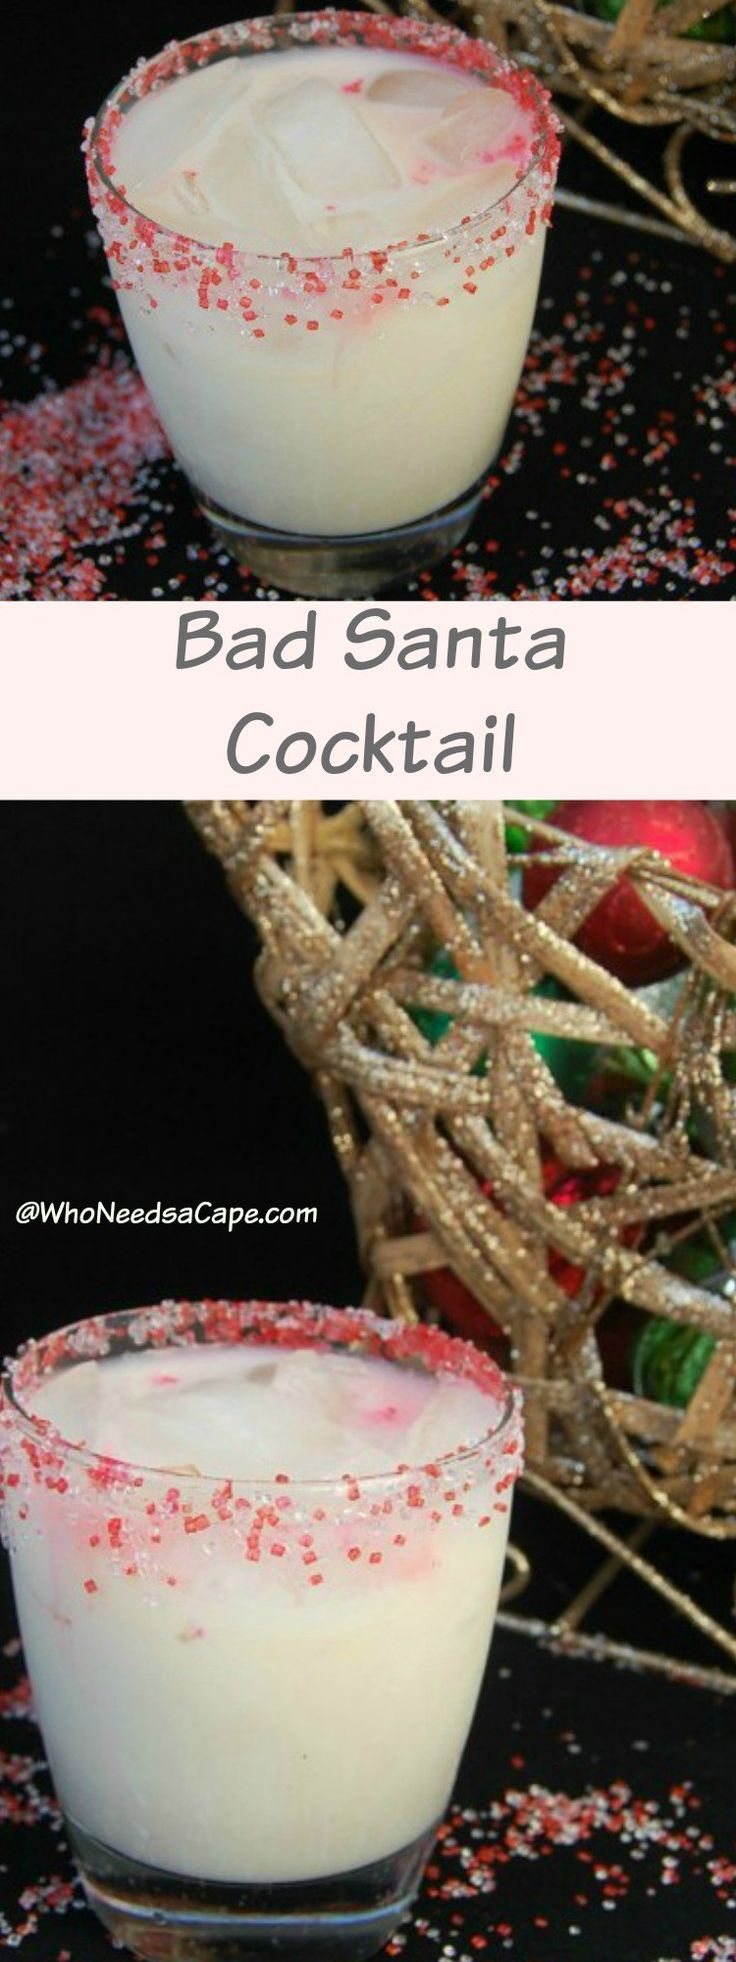 Bad Santa Cocktail is like drinking a Sugar Cookie (santa's favorite!). This is the PERFECT Holiday Cocktail!